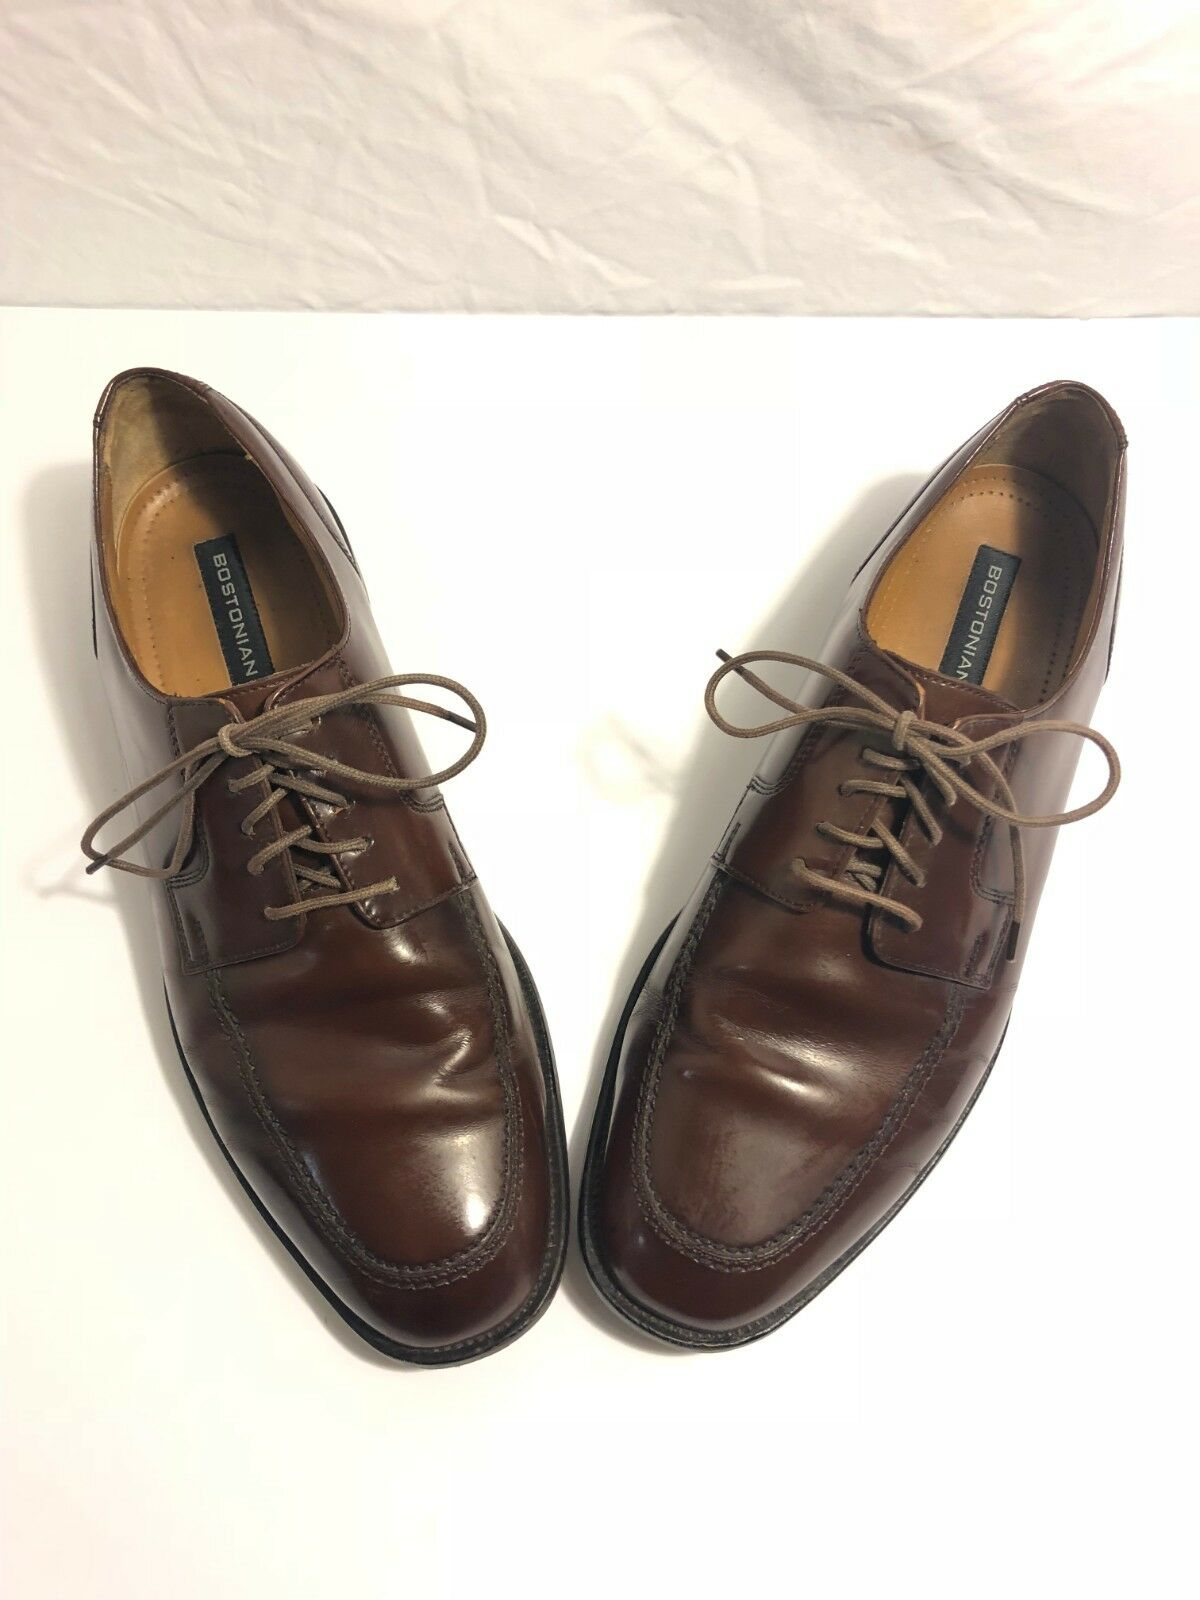 Bostonian shoes Size 10.5 M Oxfords First Flex Mens Brown Leather 25022